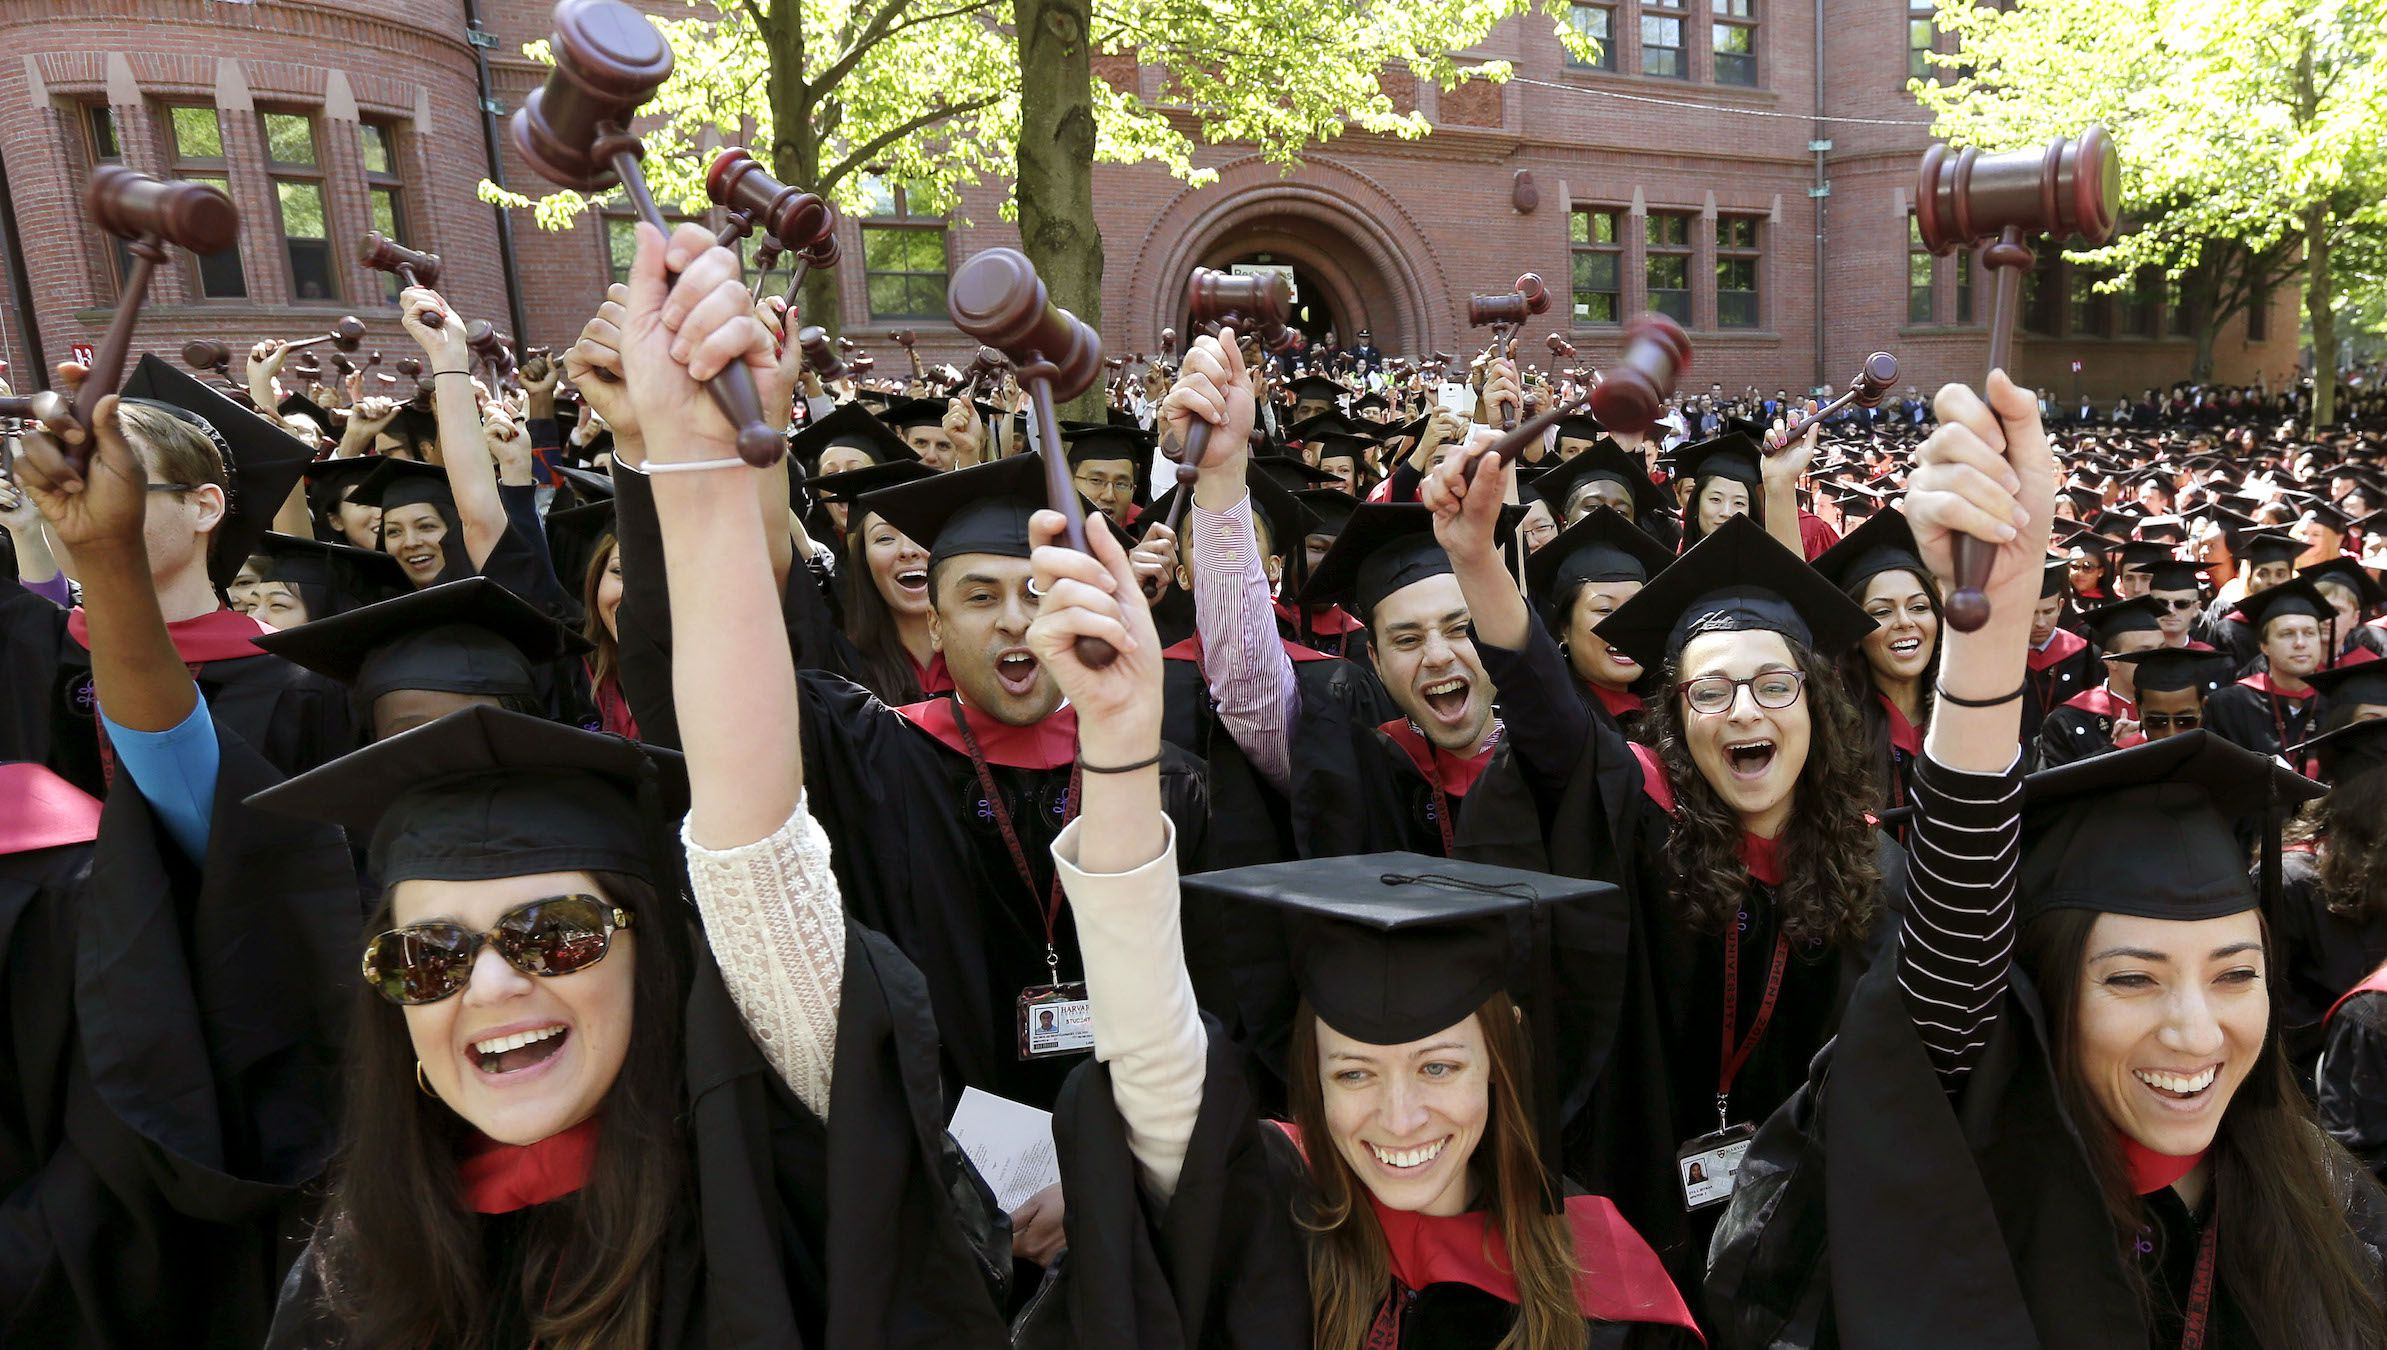 Sarah Ashley Wheaton, center front, joins with other graduates from the Harvard Law School as they wave gavels and cheer during Harvard University commencement ceremonies, Thursday, May 29, 2014, in Cambridge, Mass. (AP Photo/Steven Senne)